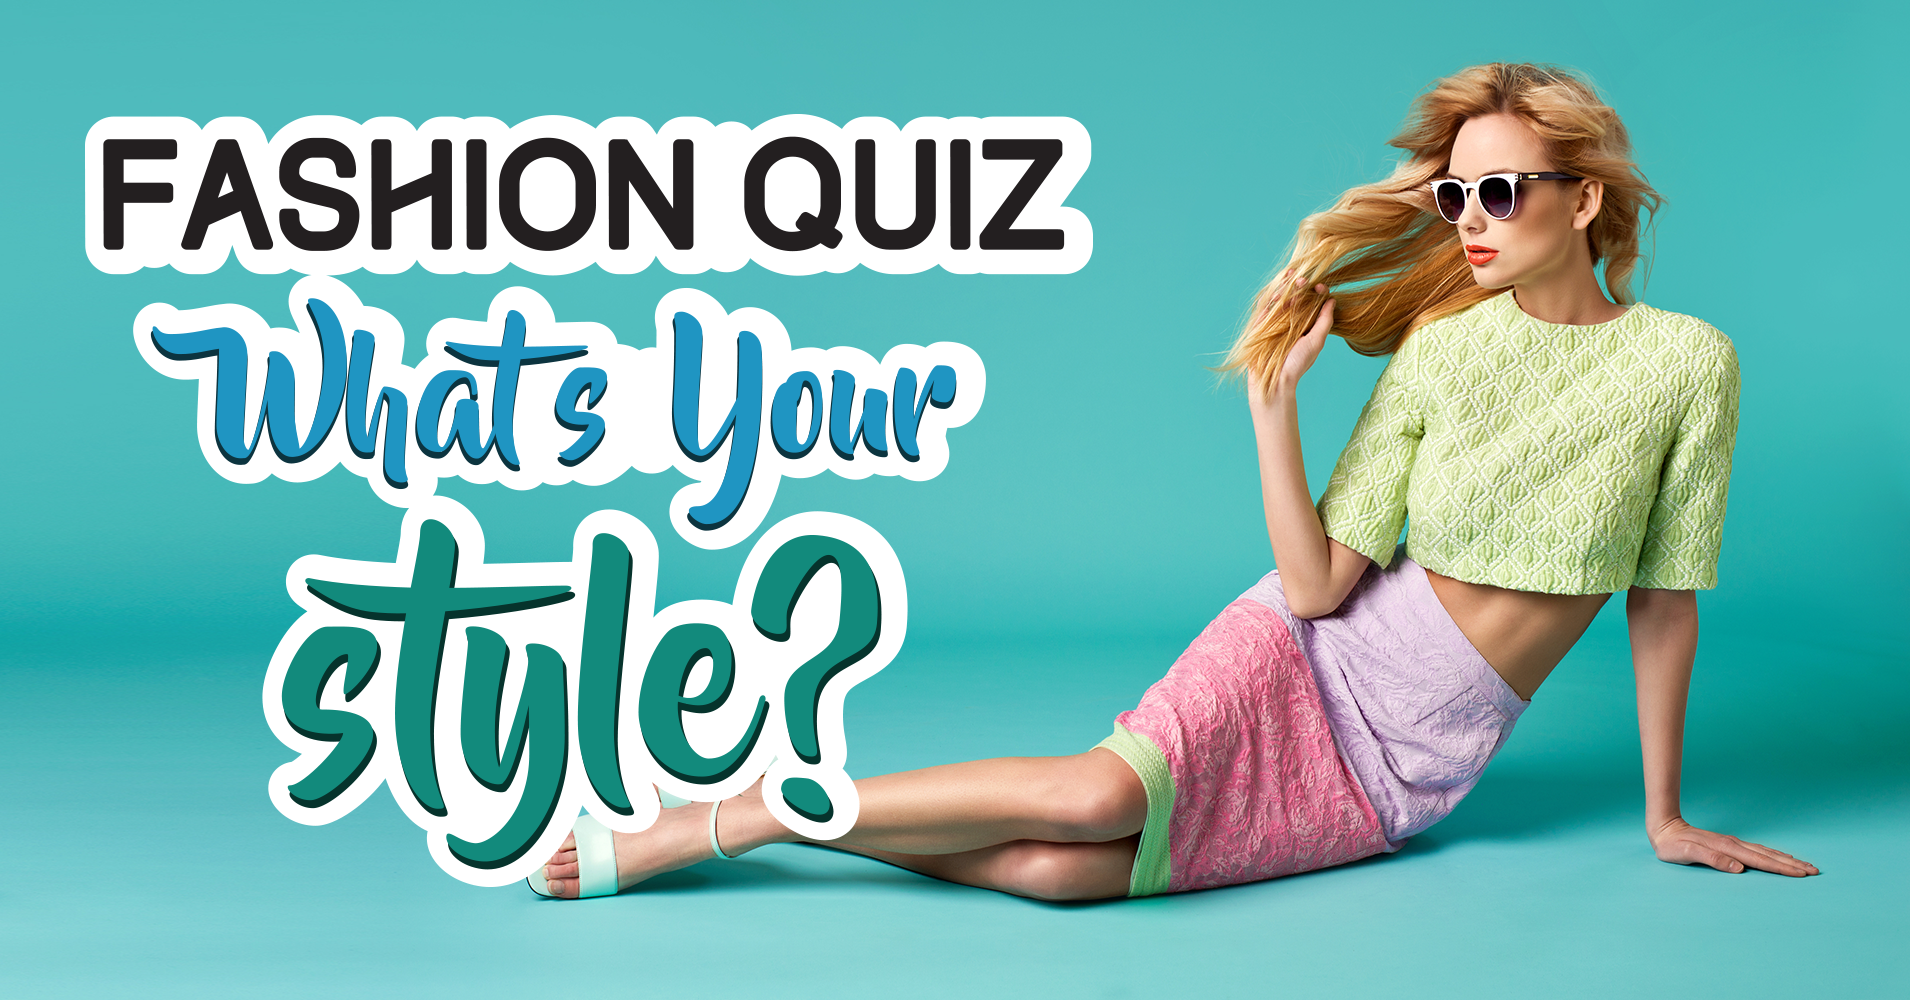 Fashion quiz what 39 s your style quiz Find my fashion style quiz